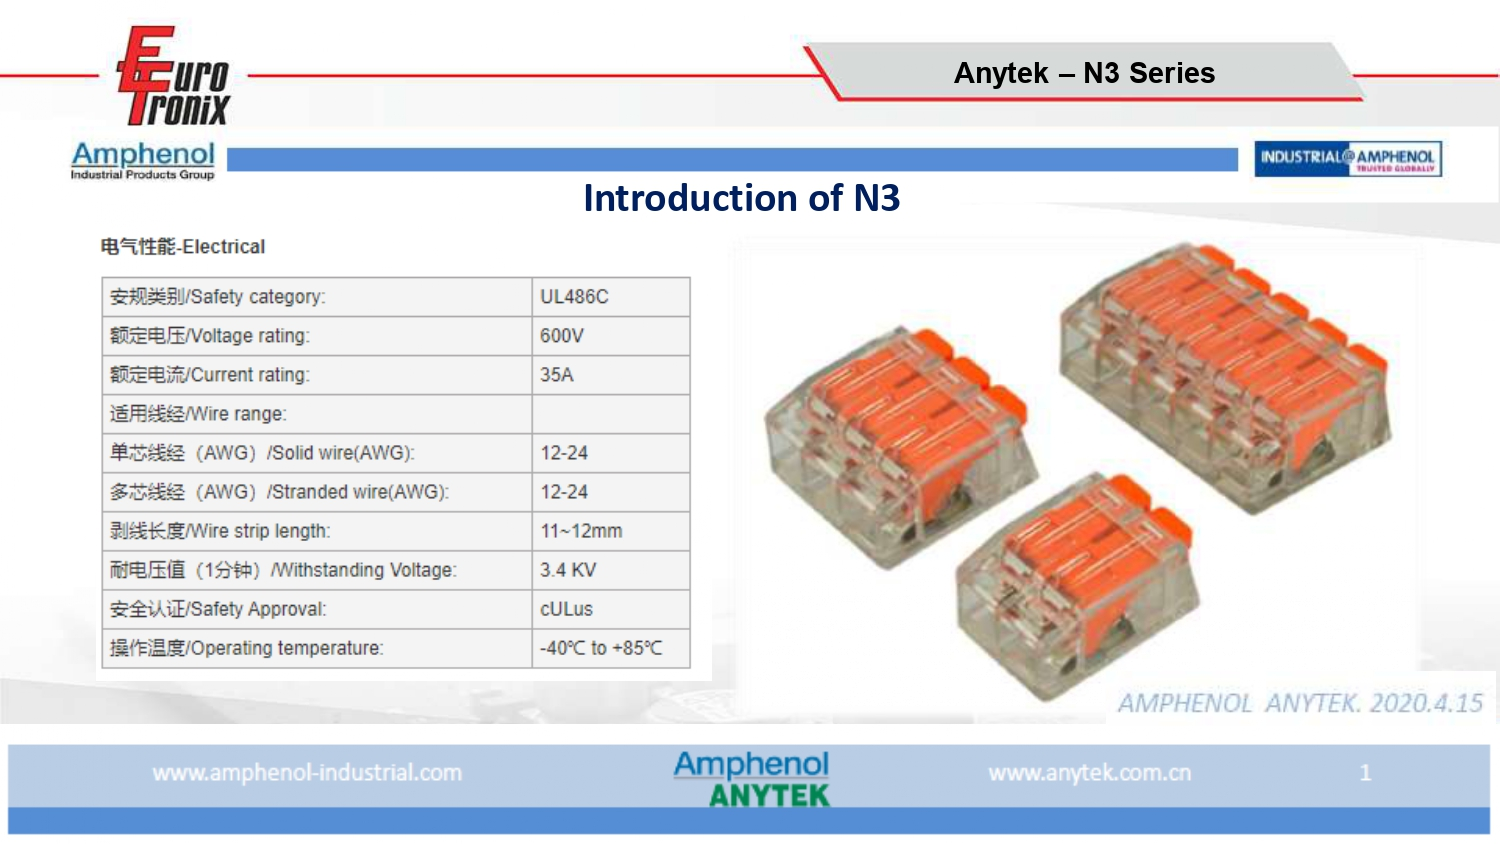 New N3 Series from Amphenol Anytek for lighting  and Smart Home applications